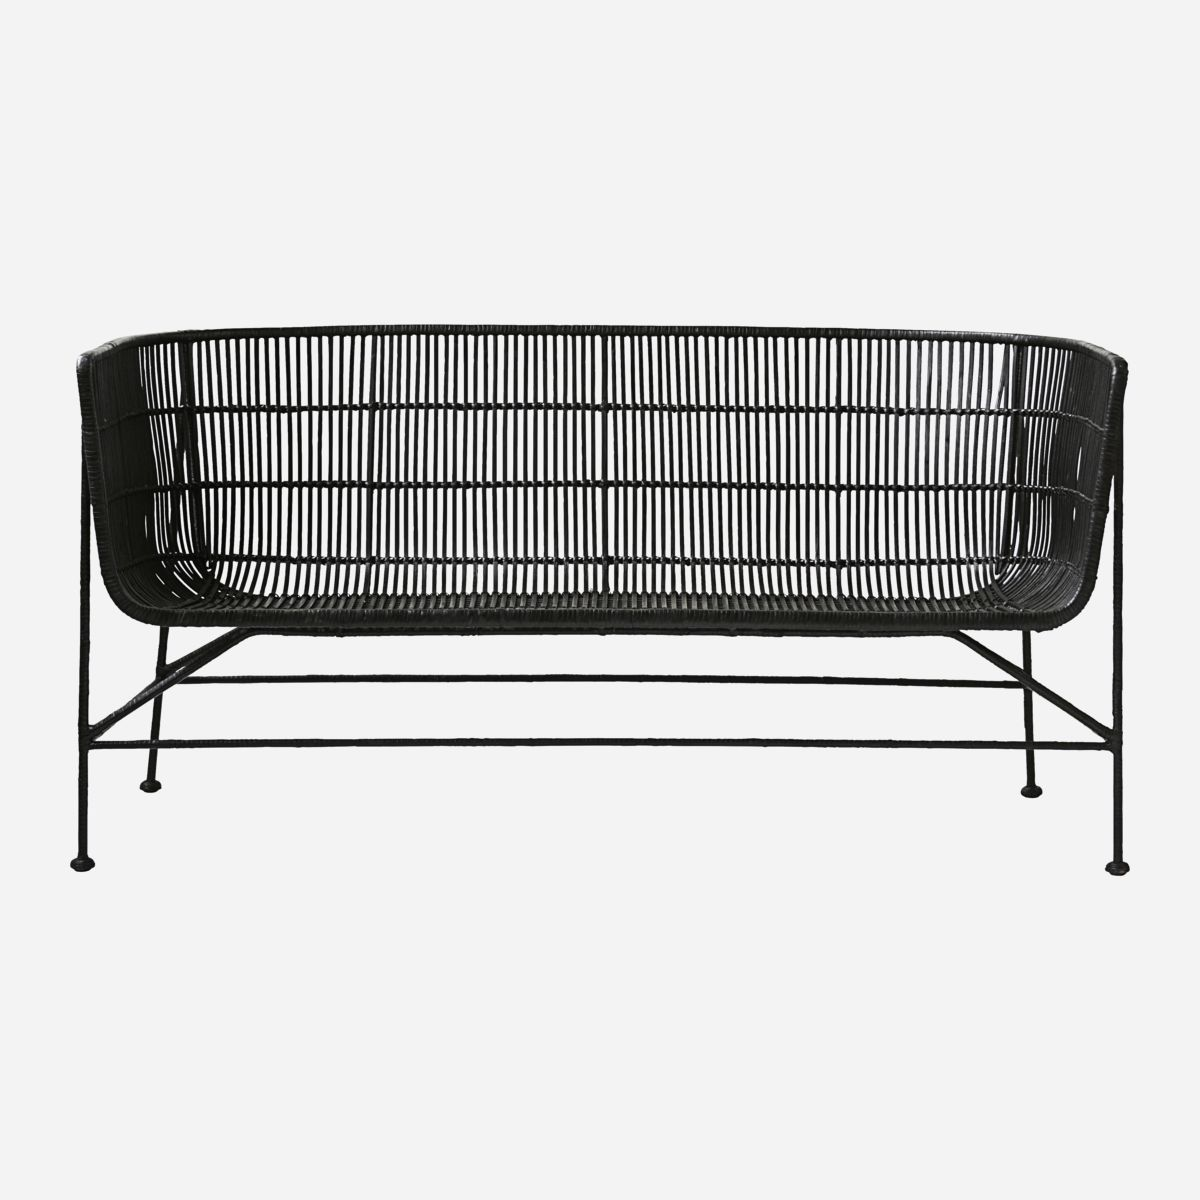 Image of   House doctor sofa coon sort siddehøjde 36 cm l140 cm b65,5 cm h70 cm